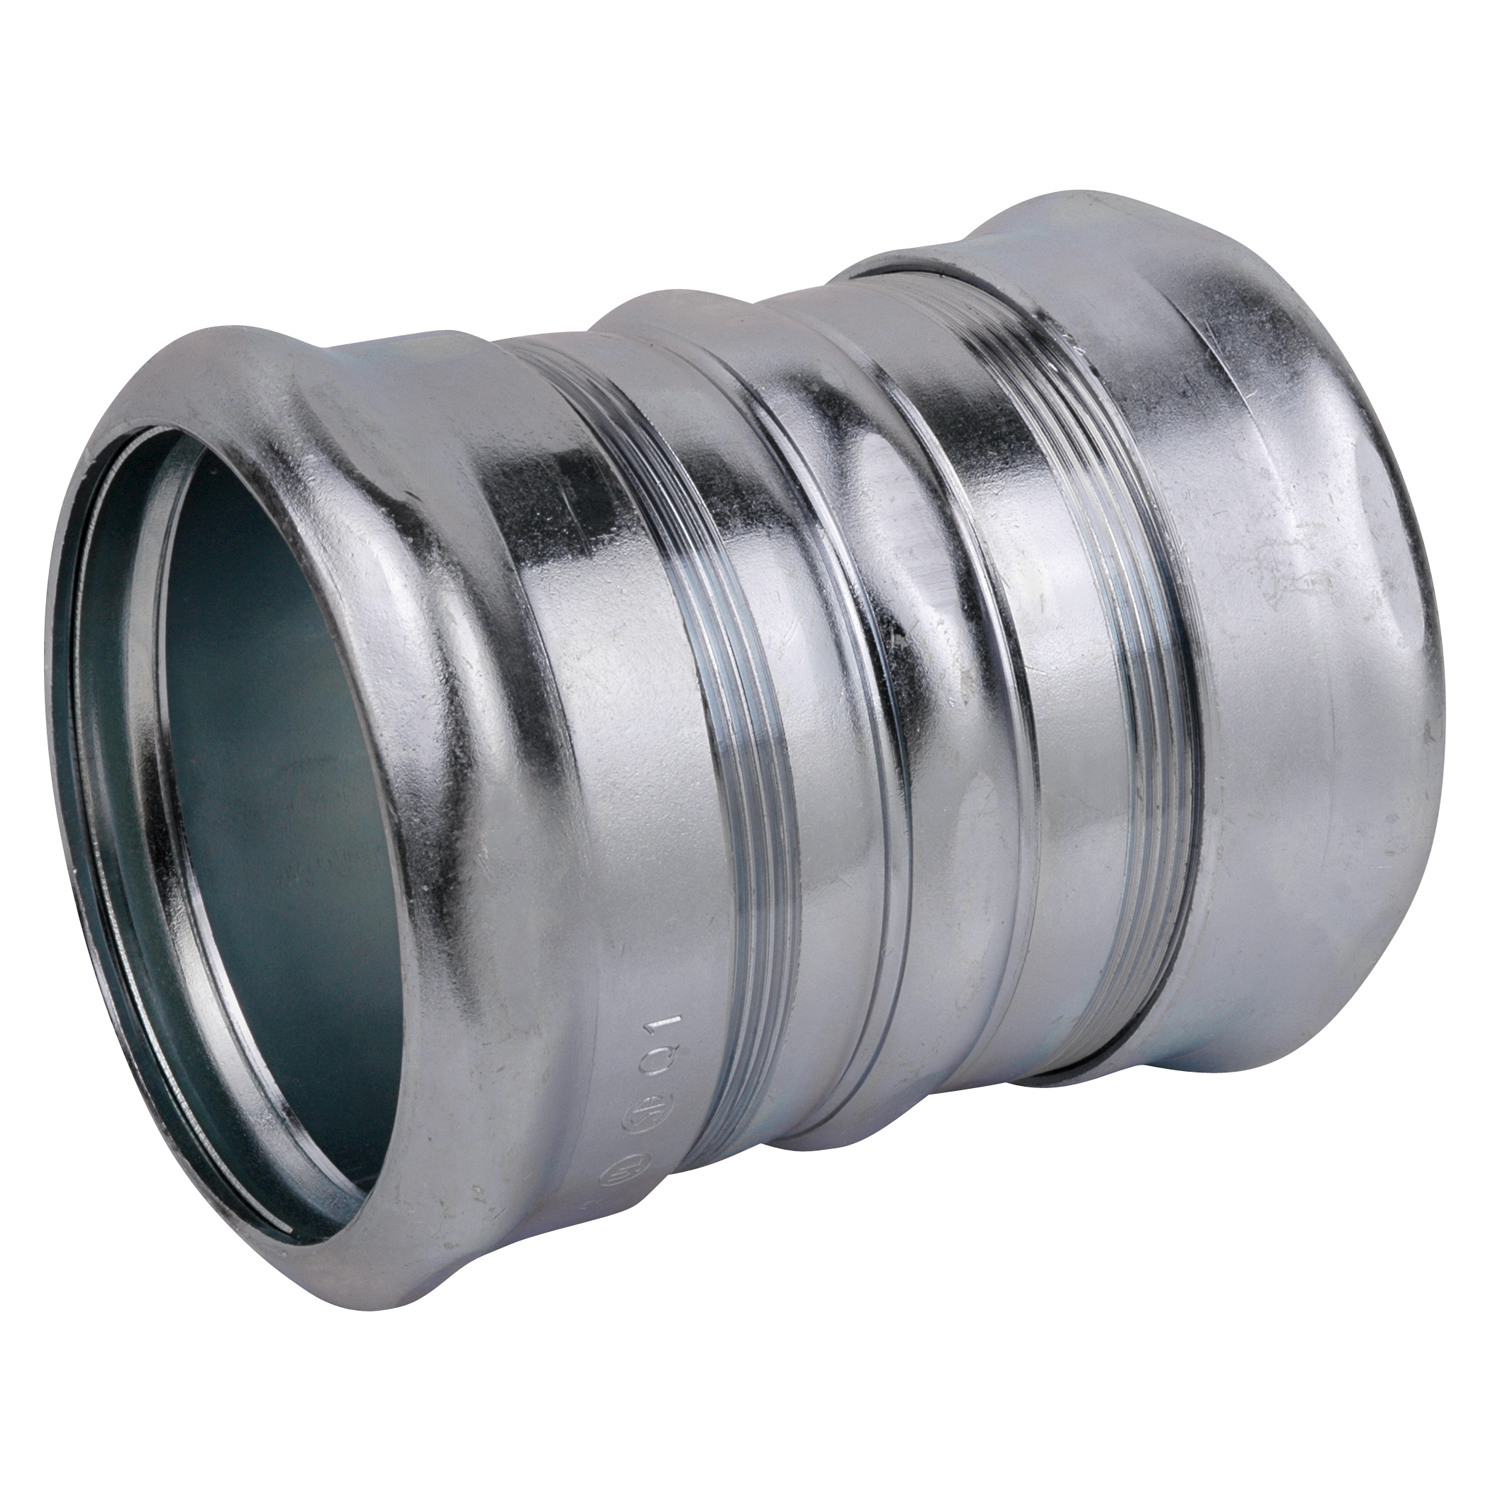 STCTK118A 3 INCH COMPRESSION COUPLING, STEEL-ZINC PLATED, CONCRETE TIGHT. FOR USE WITH EMT CONDUIT., STEEL CITY